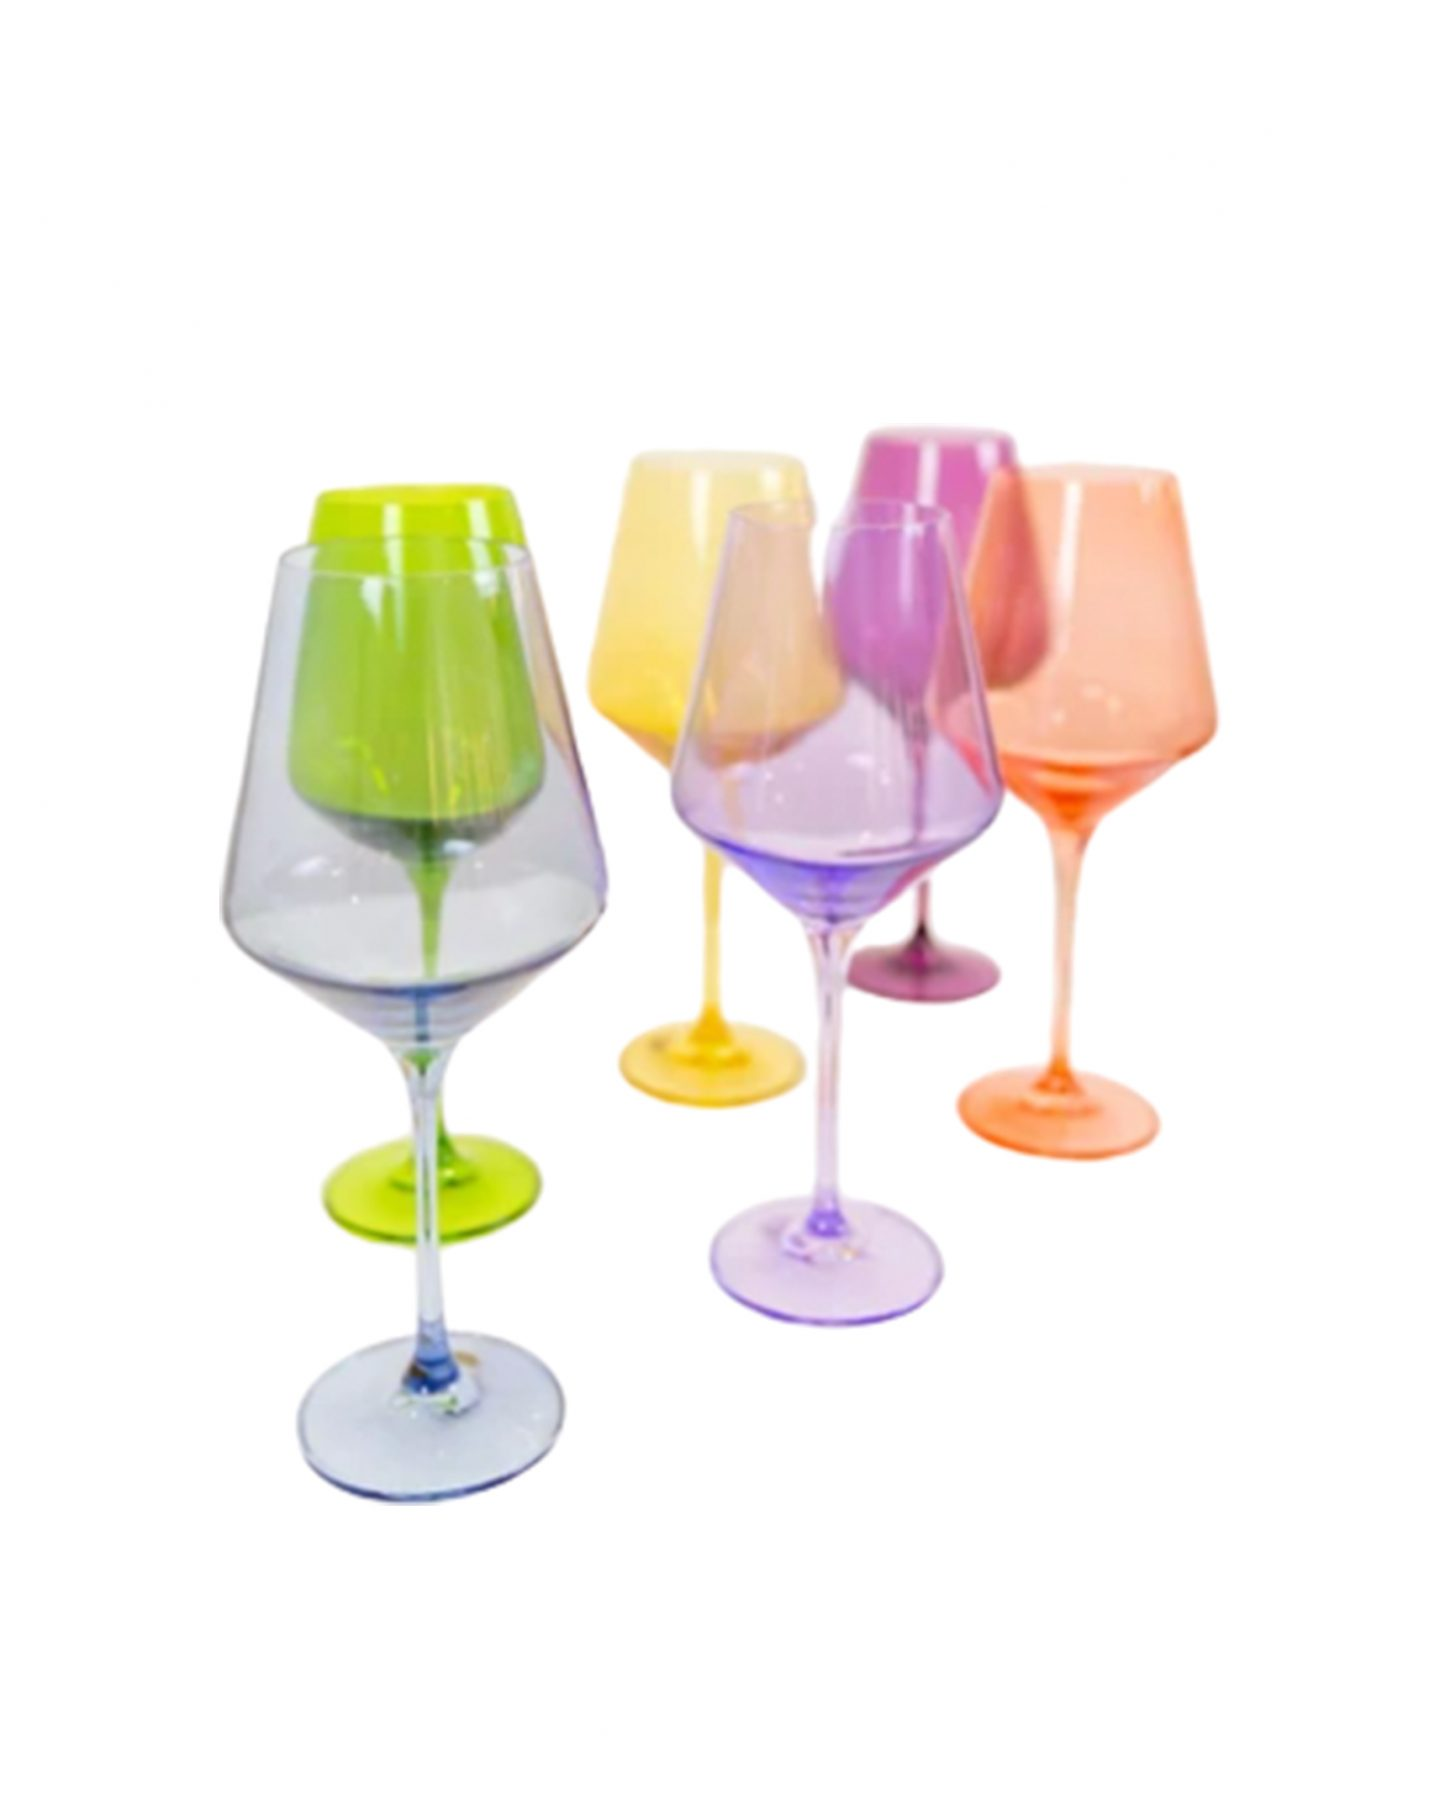 Estelle blown glass colored wine glasses